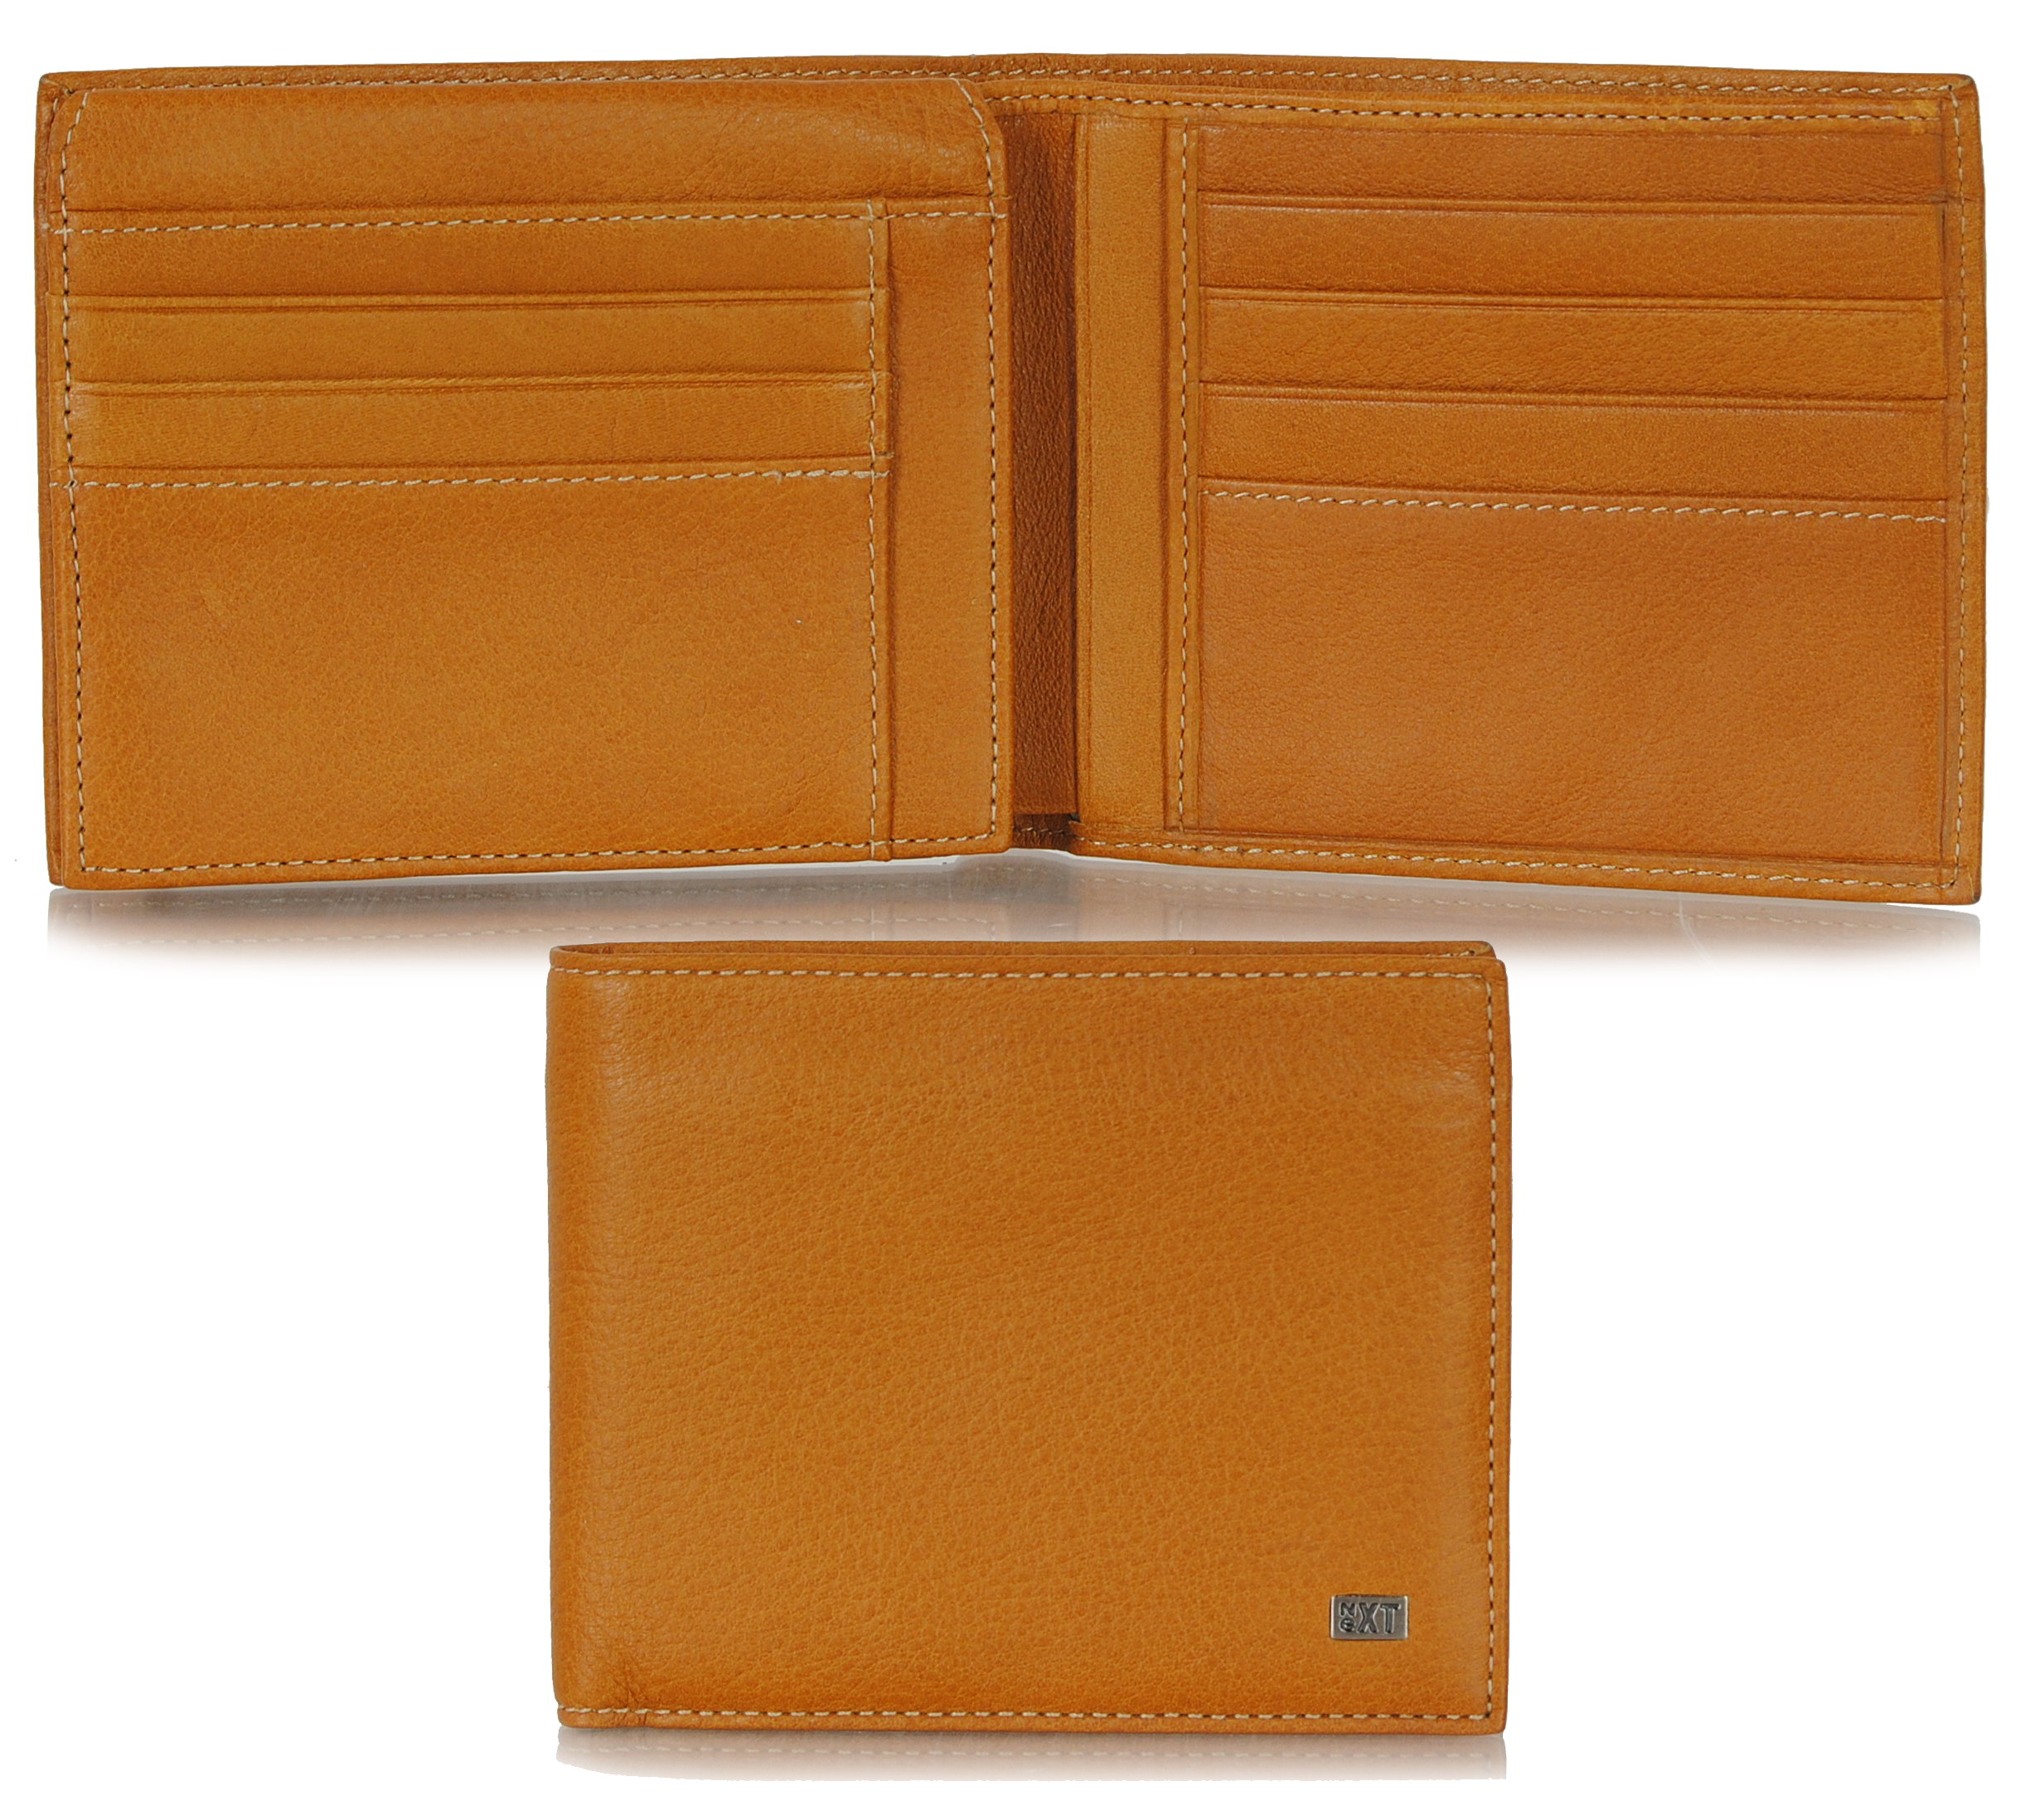 Men's wallet with flap | Acciaio